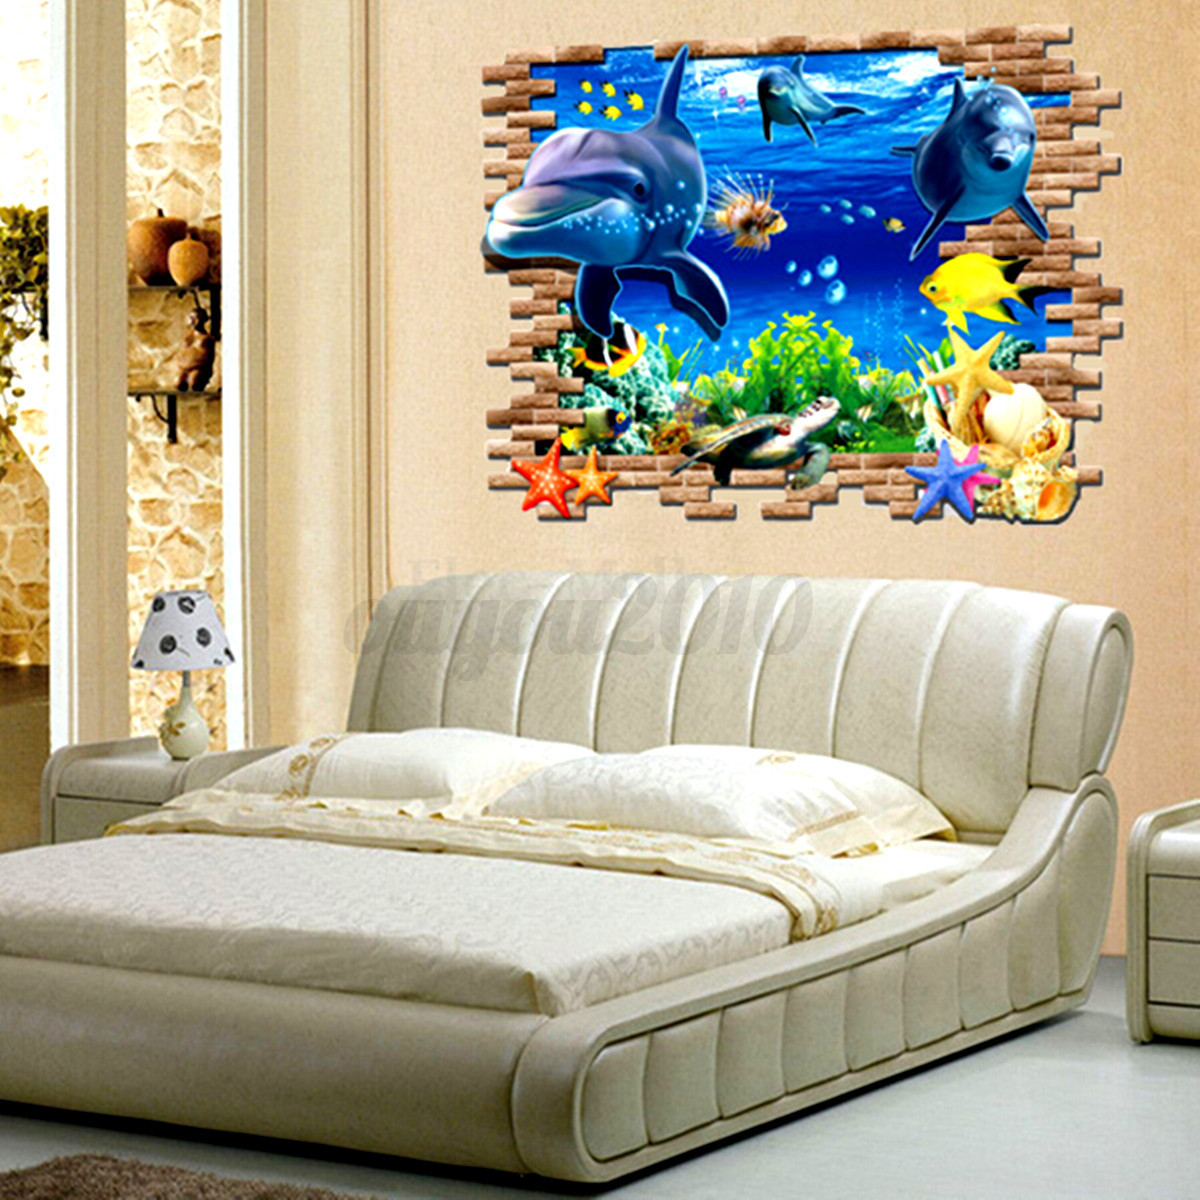 3d fenster wandtattoo sticker aufkleber stern spiegel meer. Black Bedroom Furniture Sets. Home Design Ideas